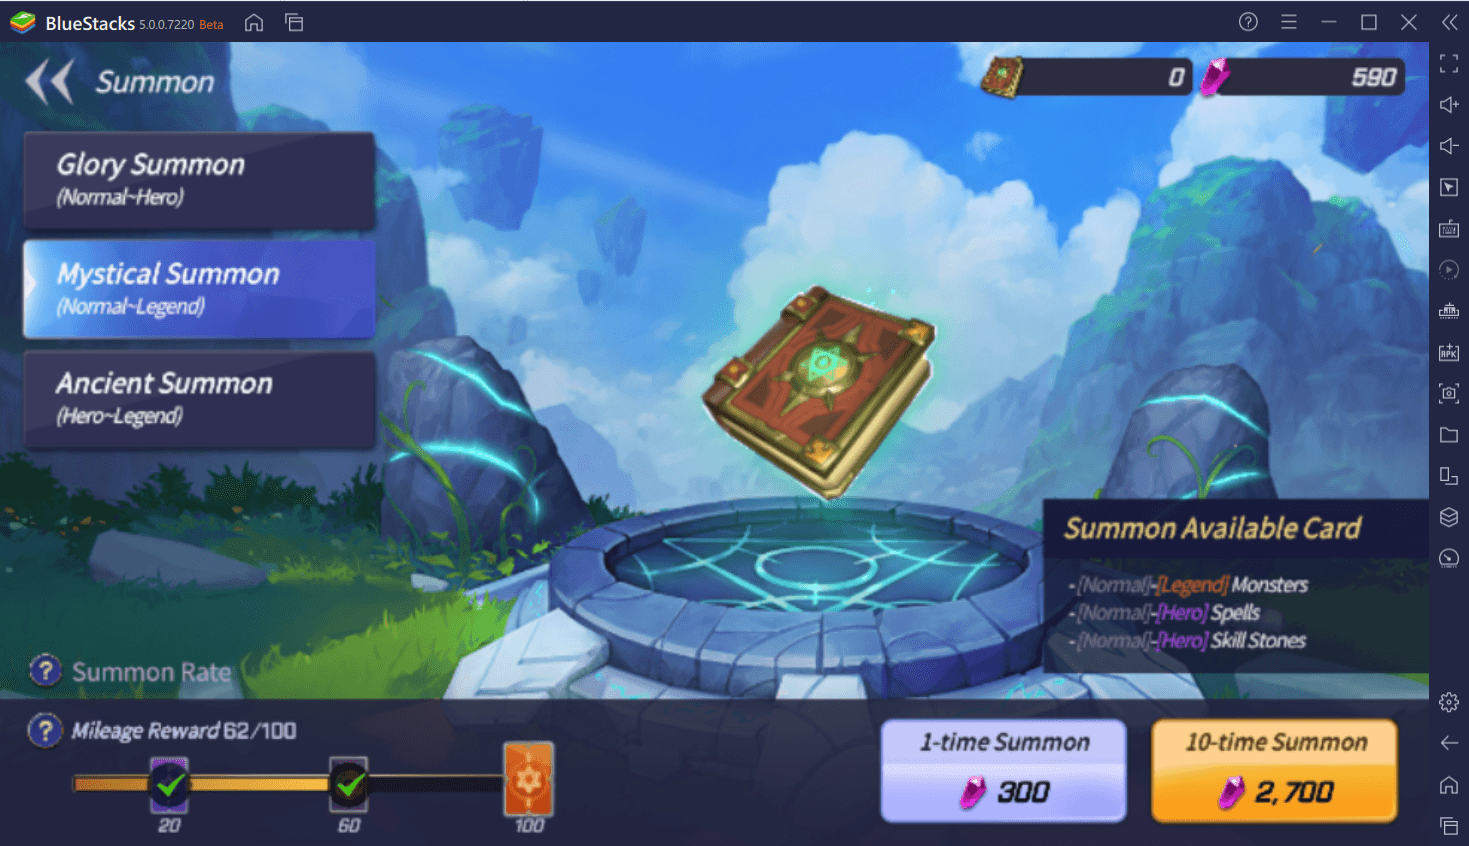 The BlueStacks Beginners' Guide for Summoners War: Lost Centuria